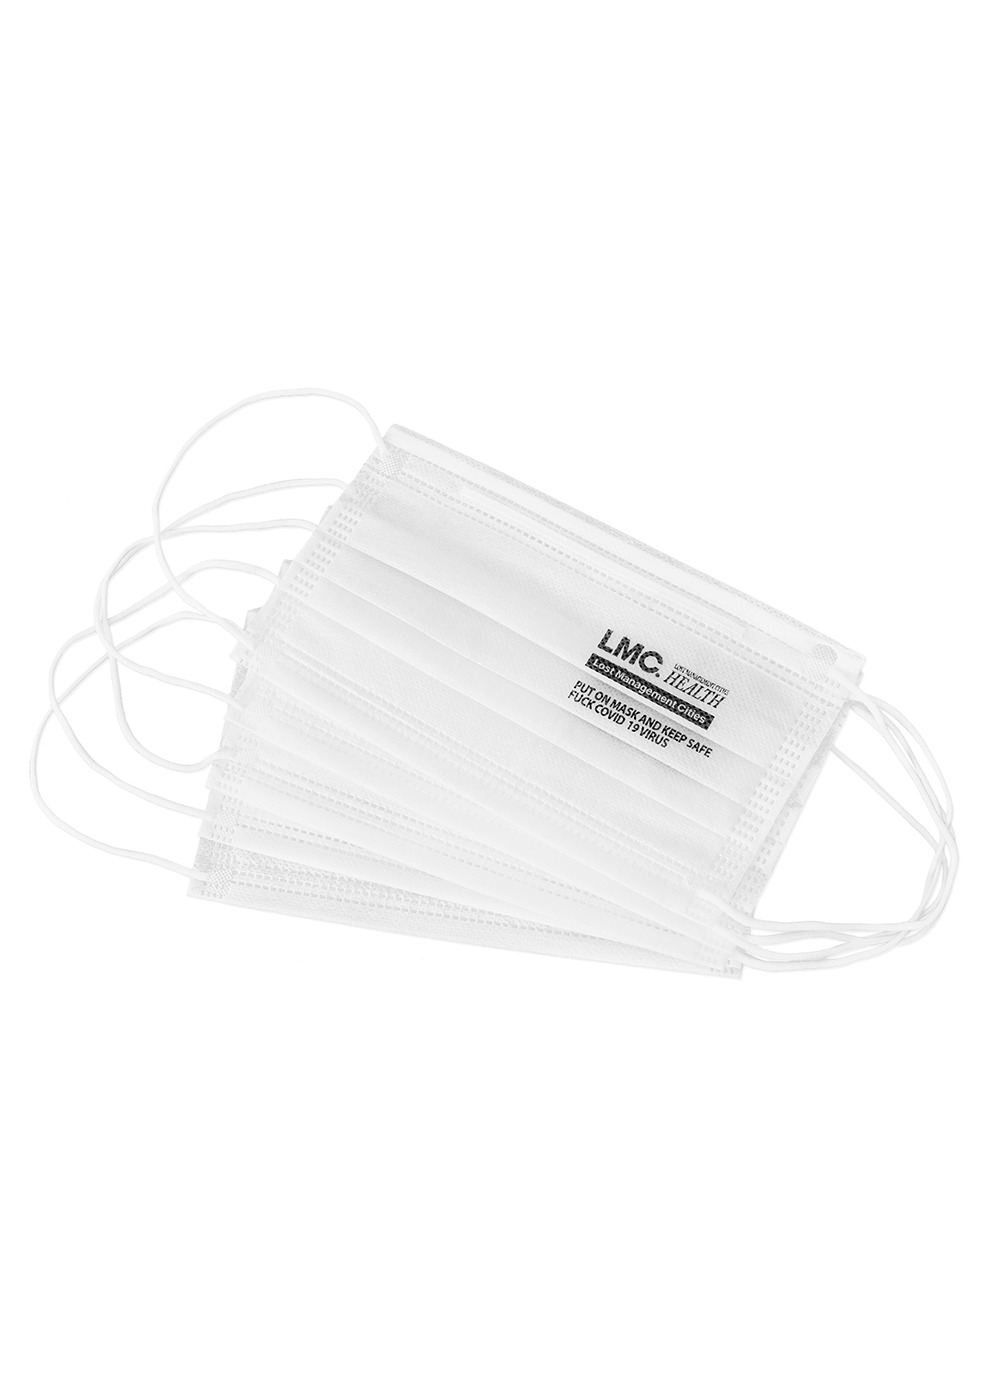 LMC HEALTH DISPOSABLE MASK white